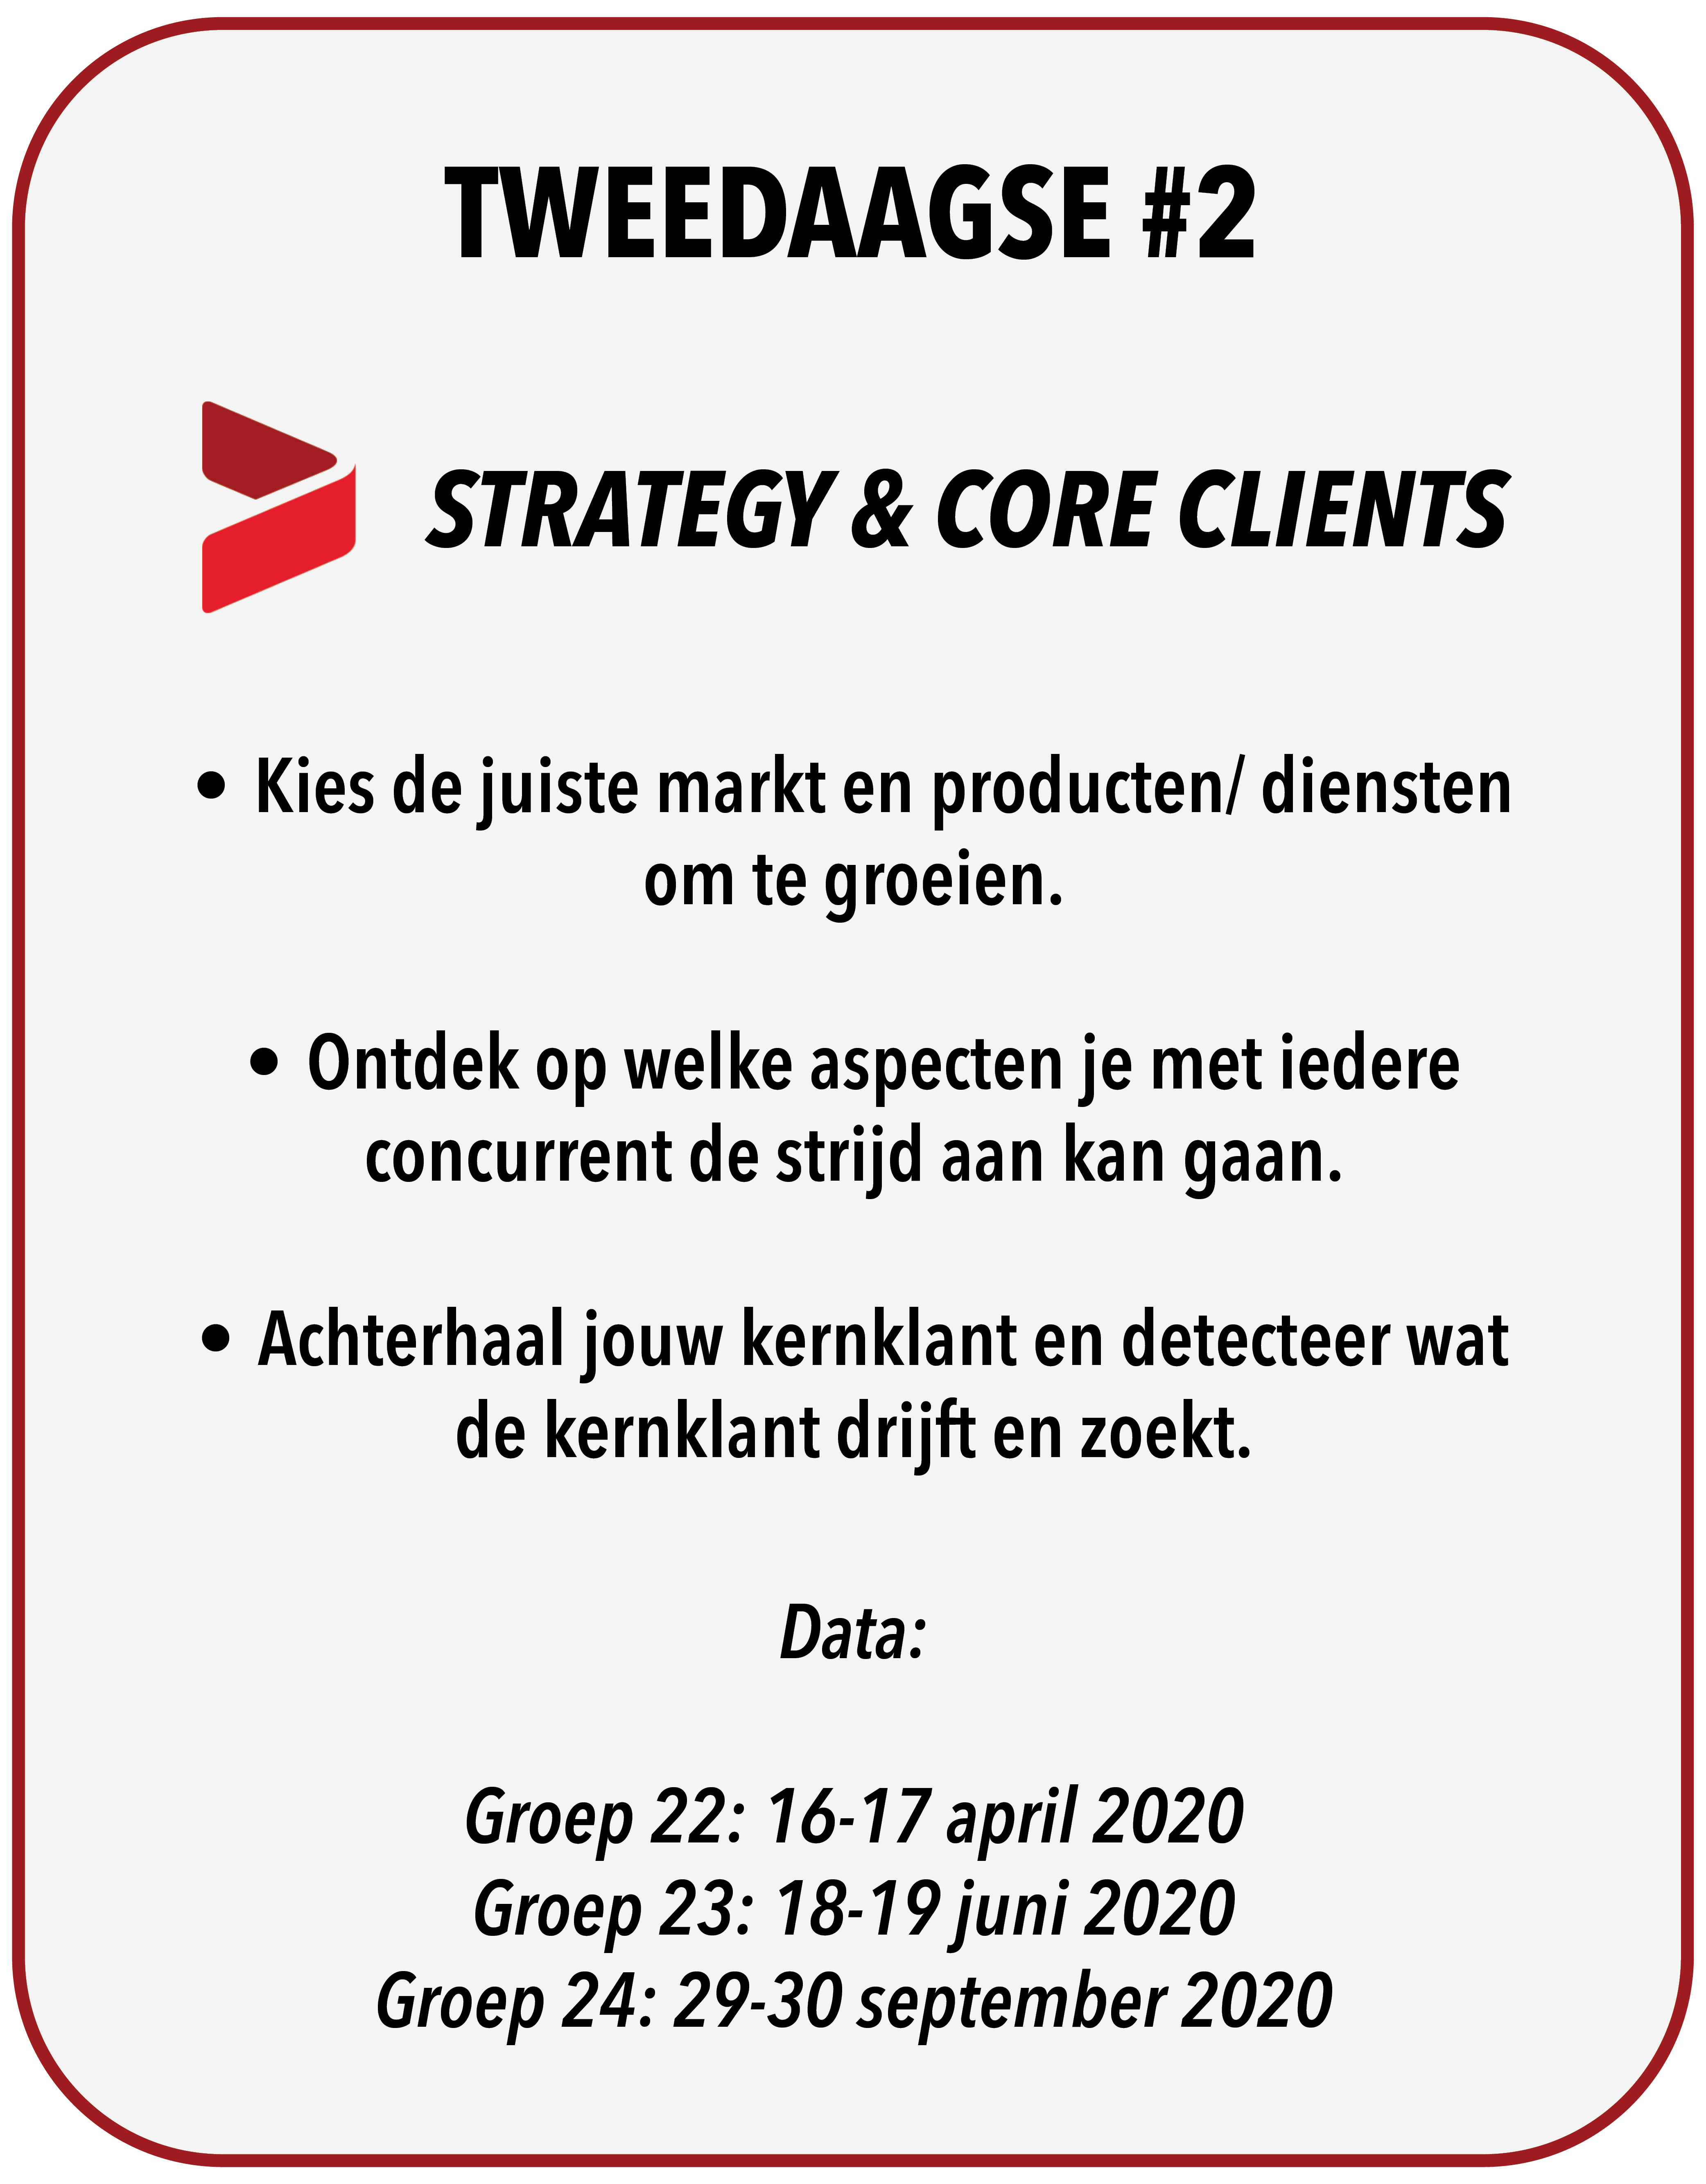 Tweedaagse #2 - Strategy & Core Clients!